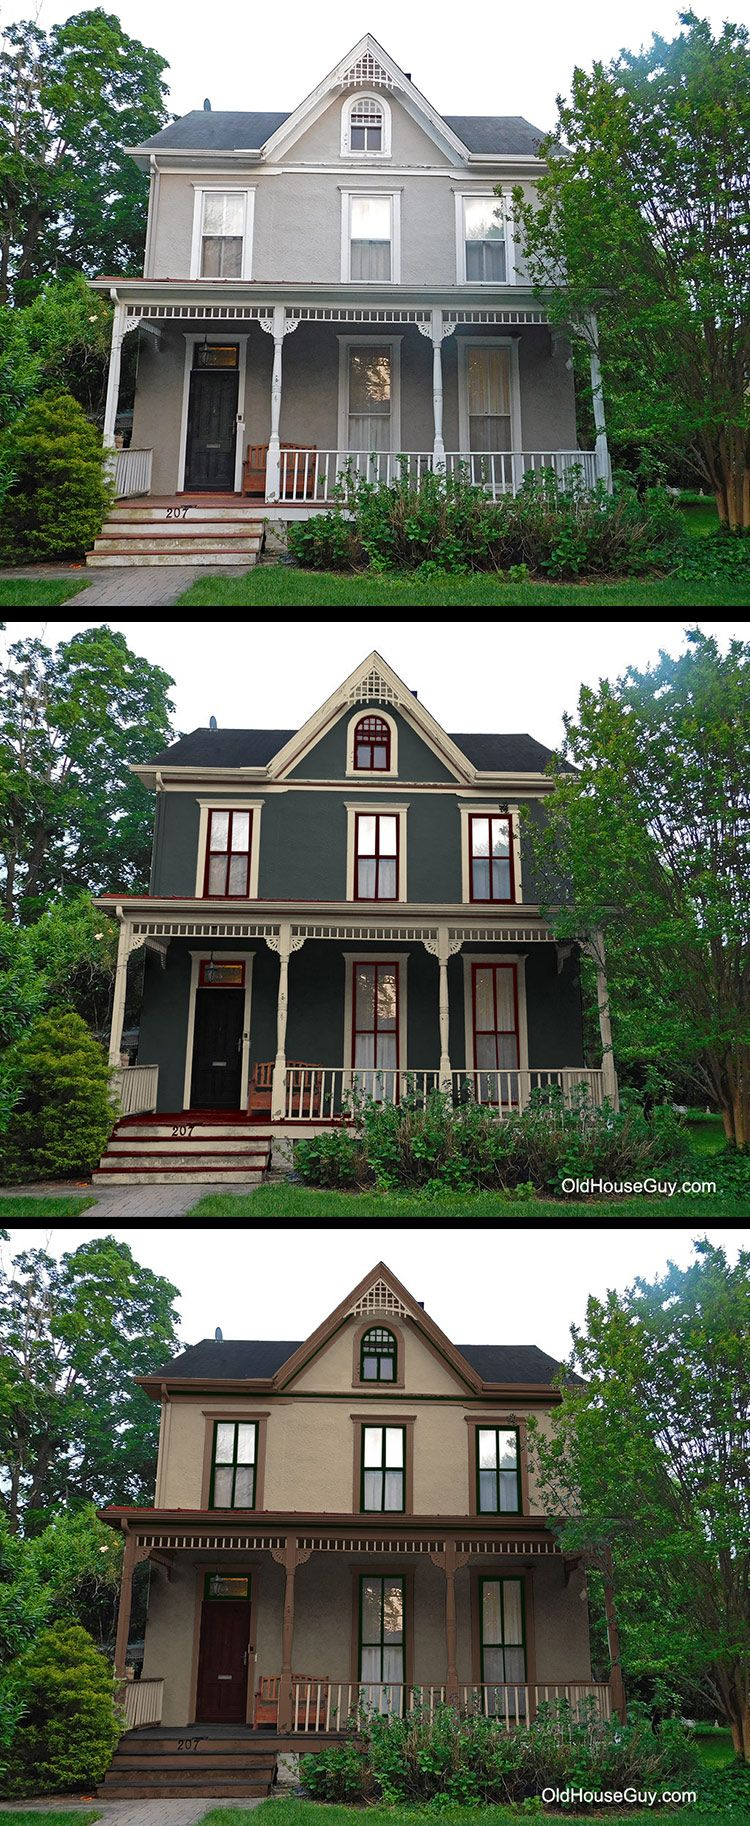 Stucco victorian with new paint colors victorian style - Painting a stucco house exterior ...